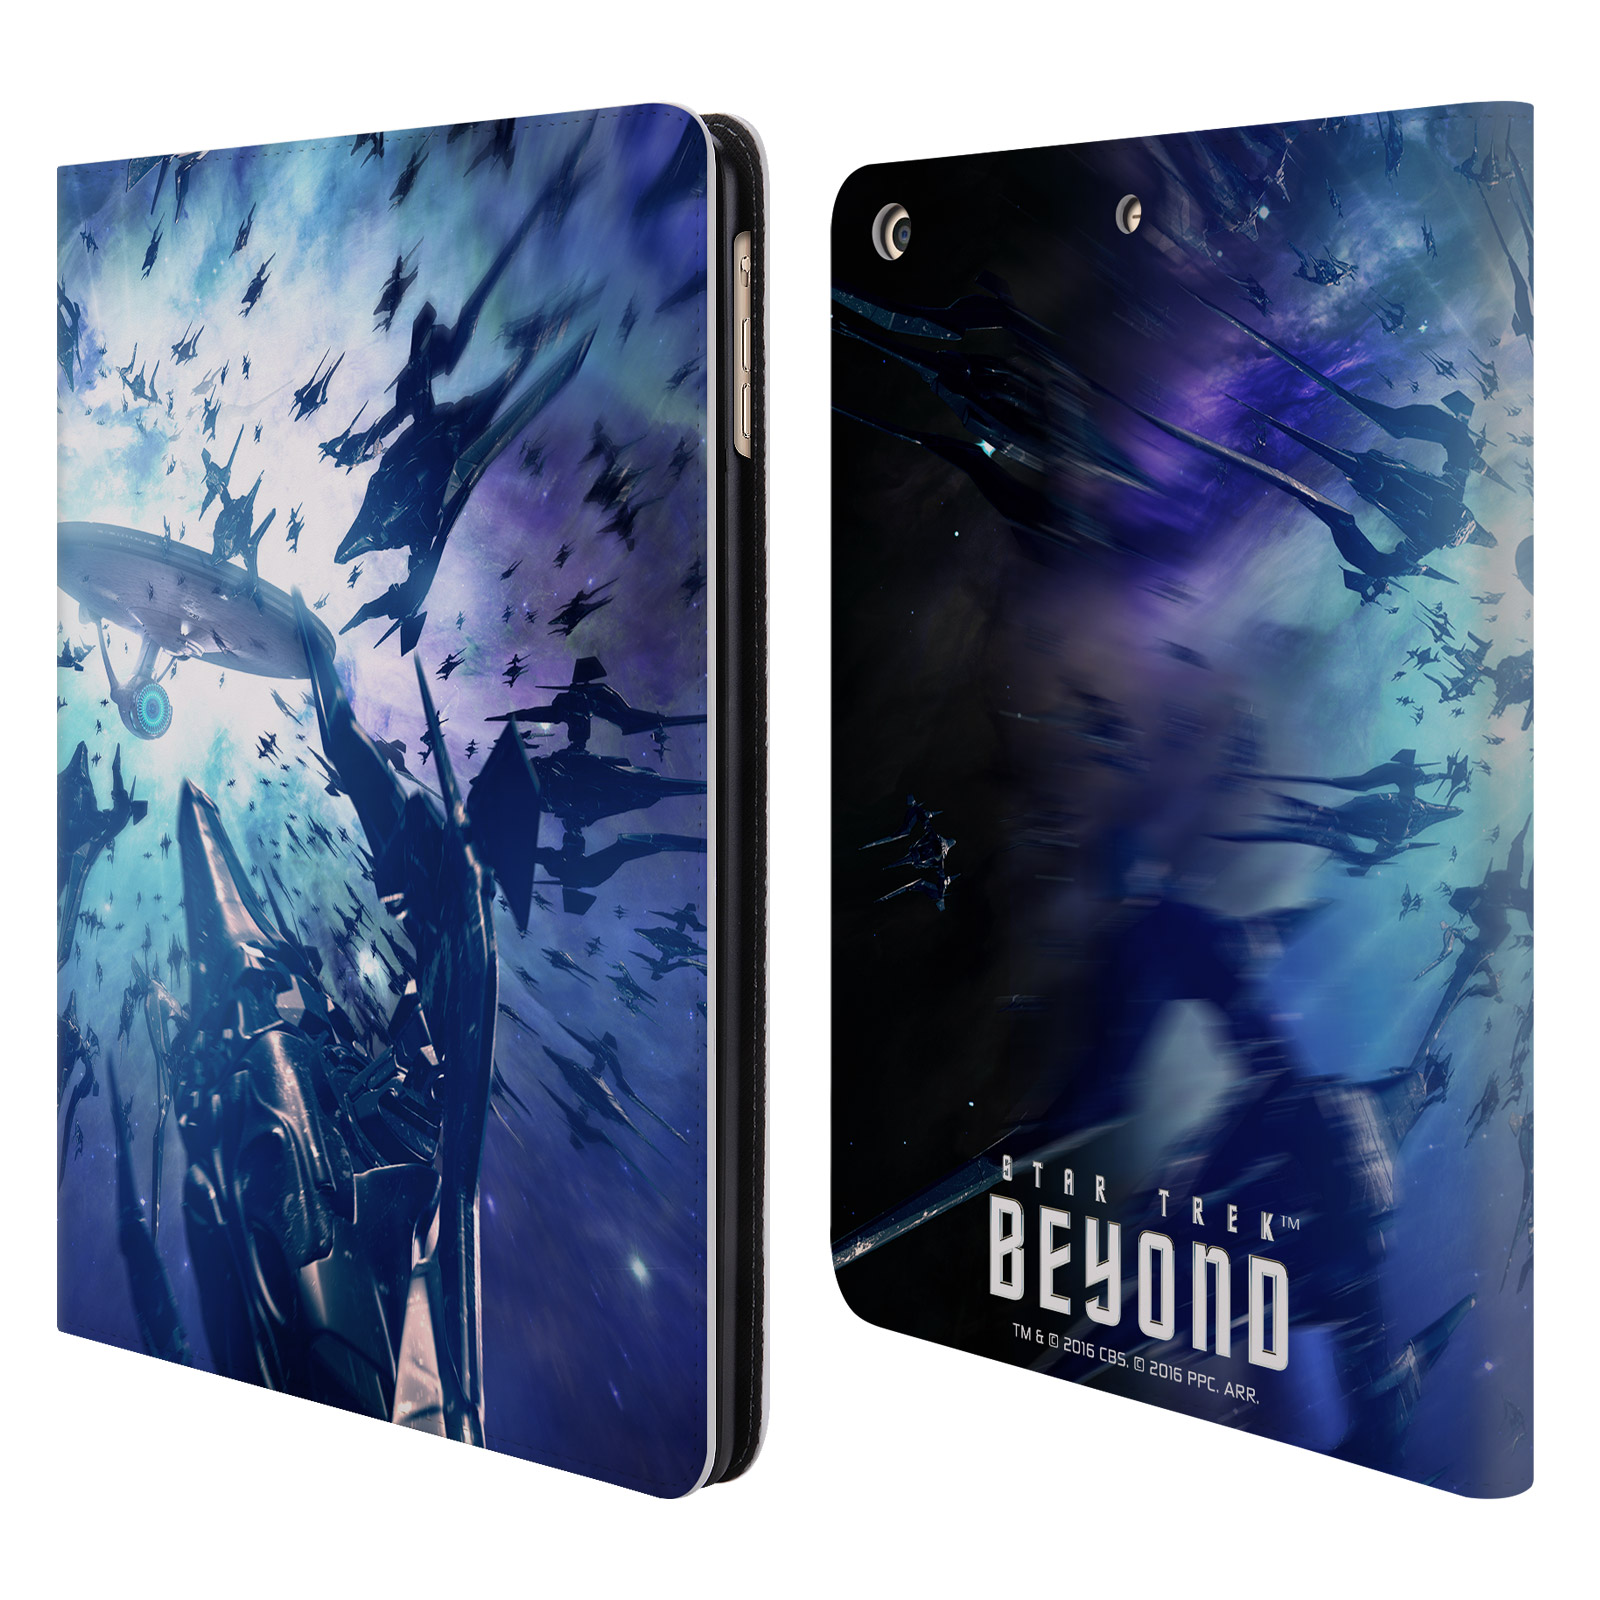 OFFICIAL STAR TREK POSTERS BEYOND XIII LEATHER BOOK WALLE...